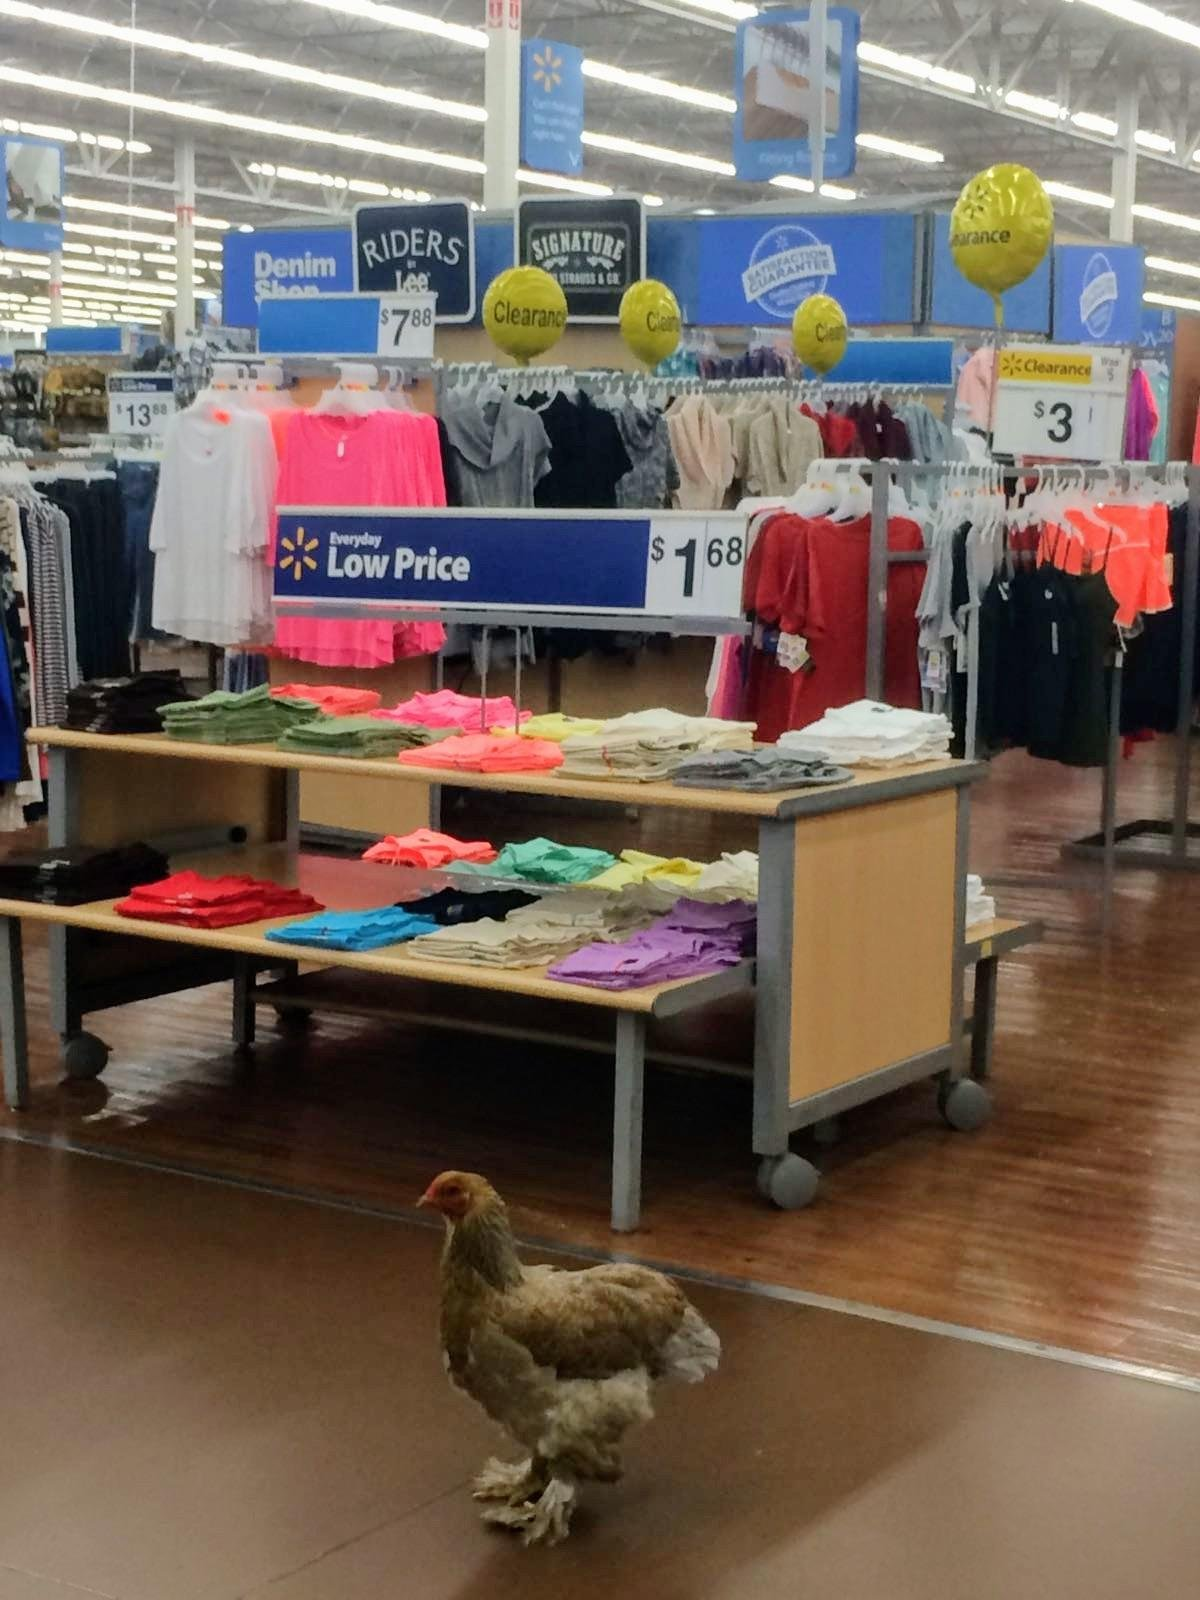 Just chicken out some shirts in Walmart....